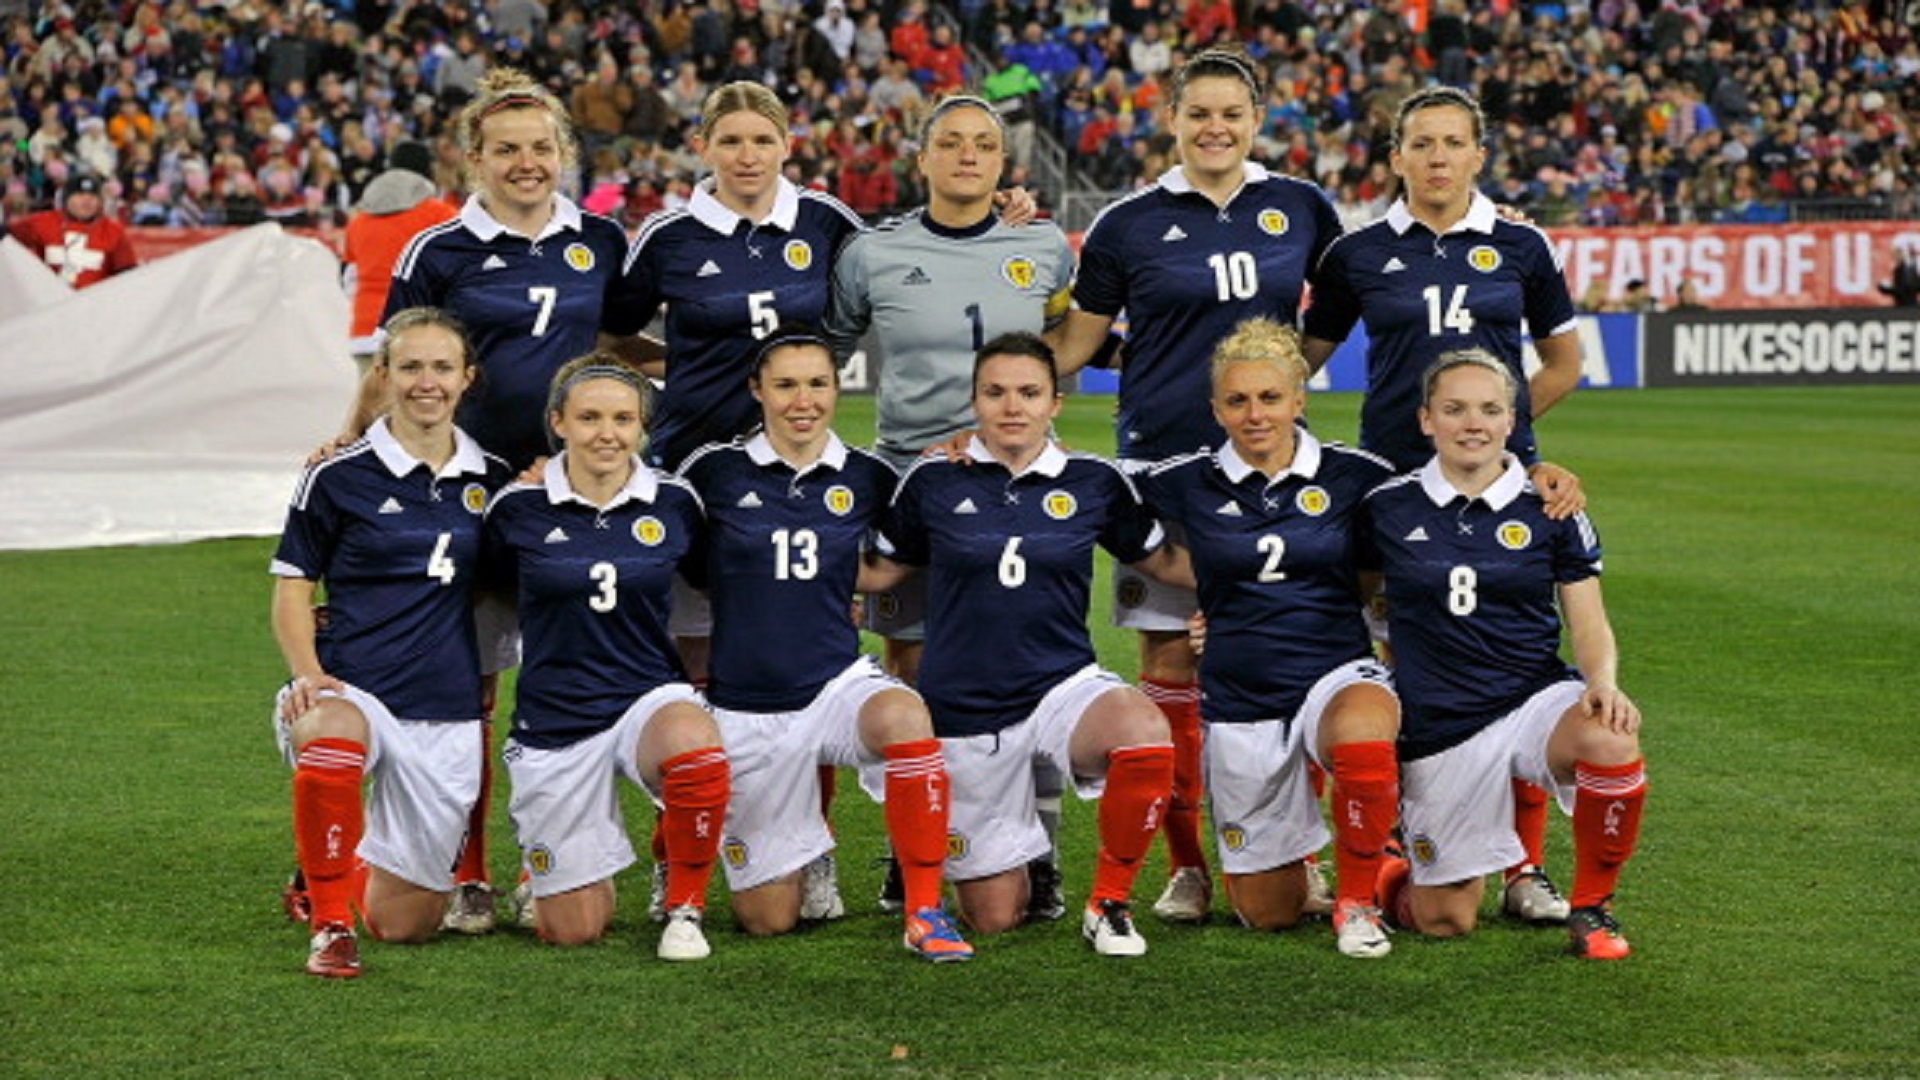 Scotland Women's National team